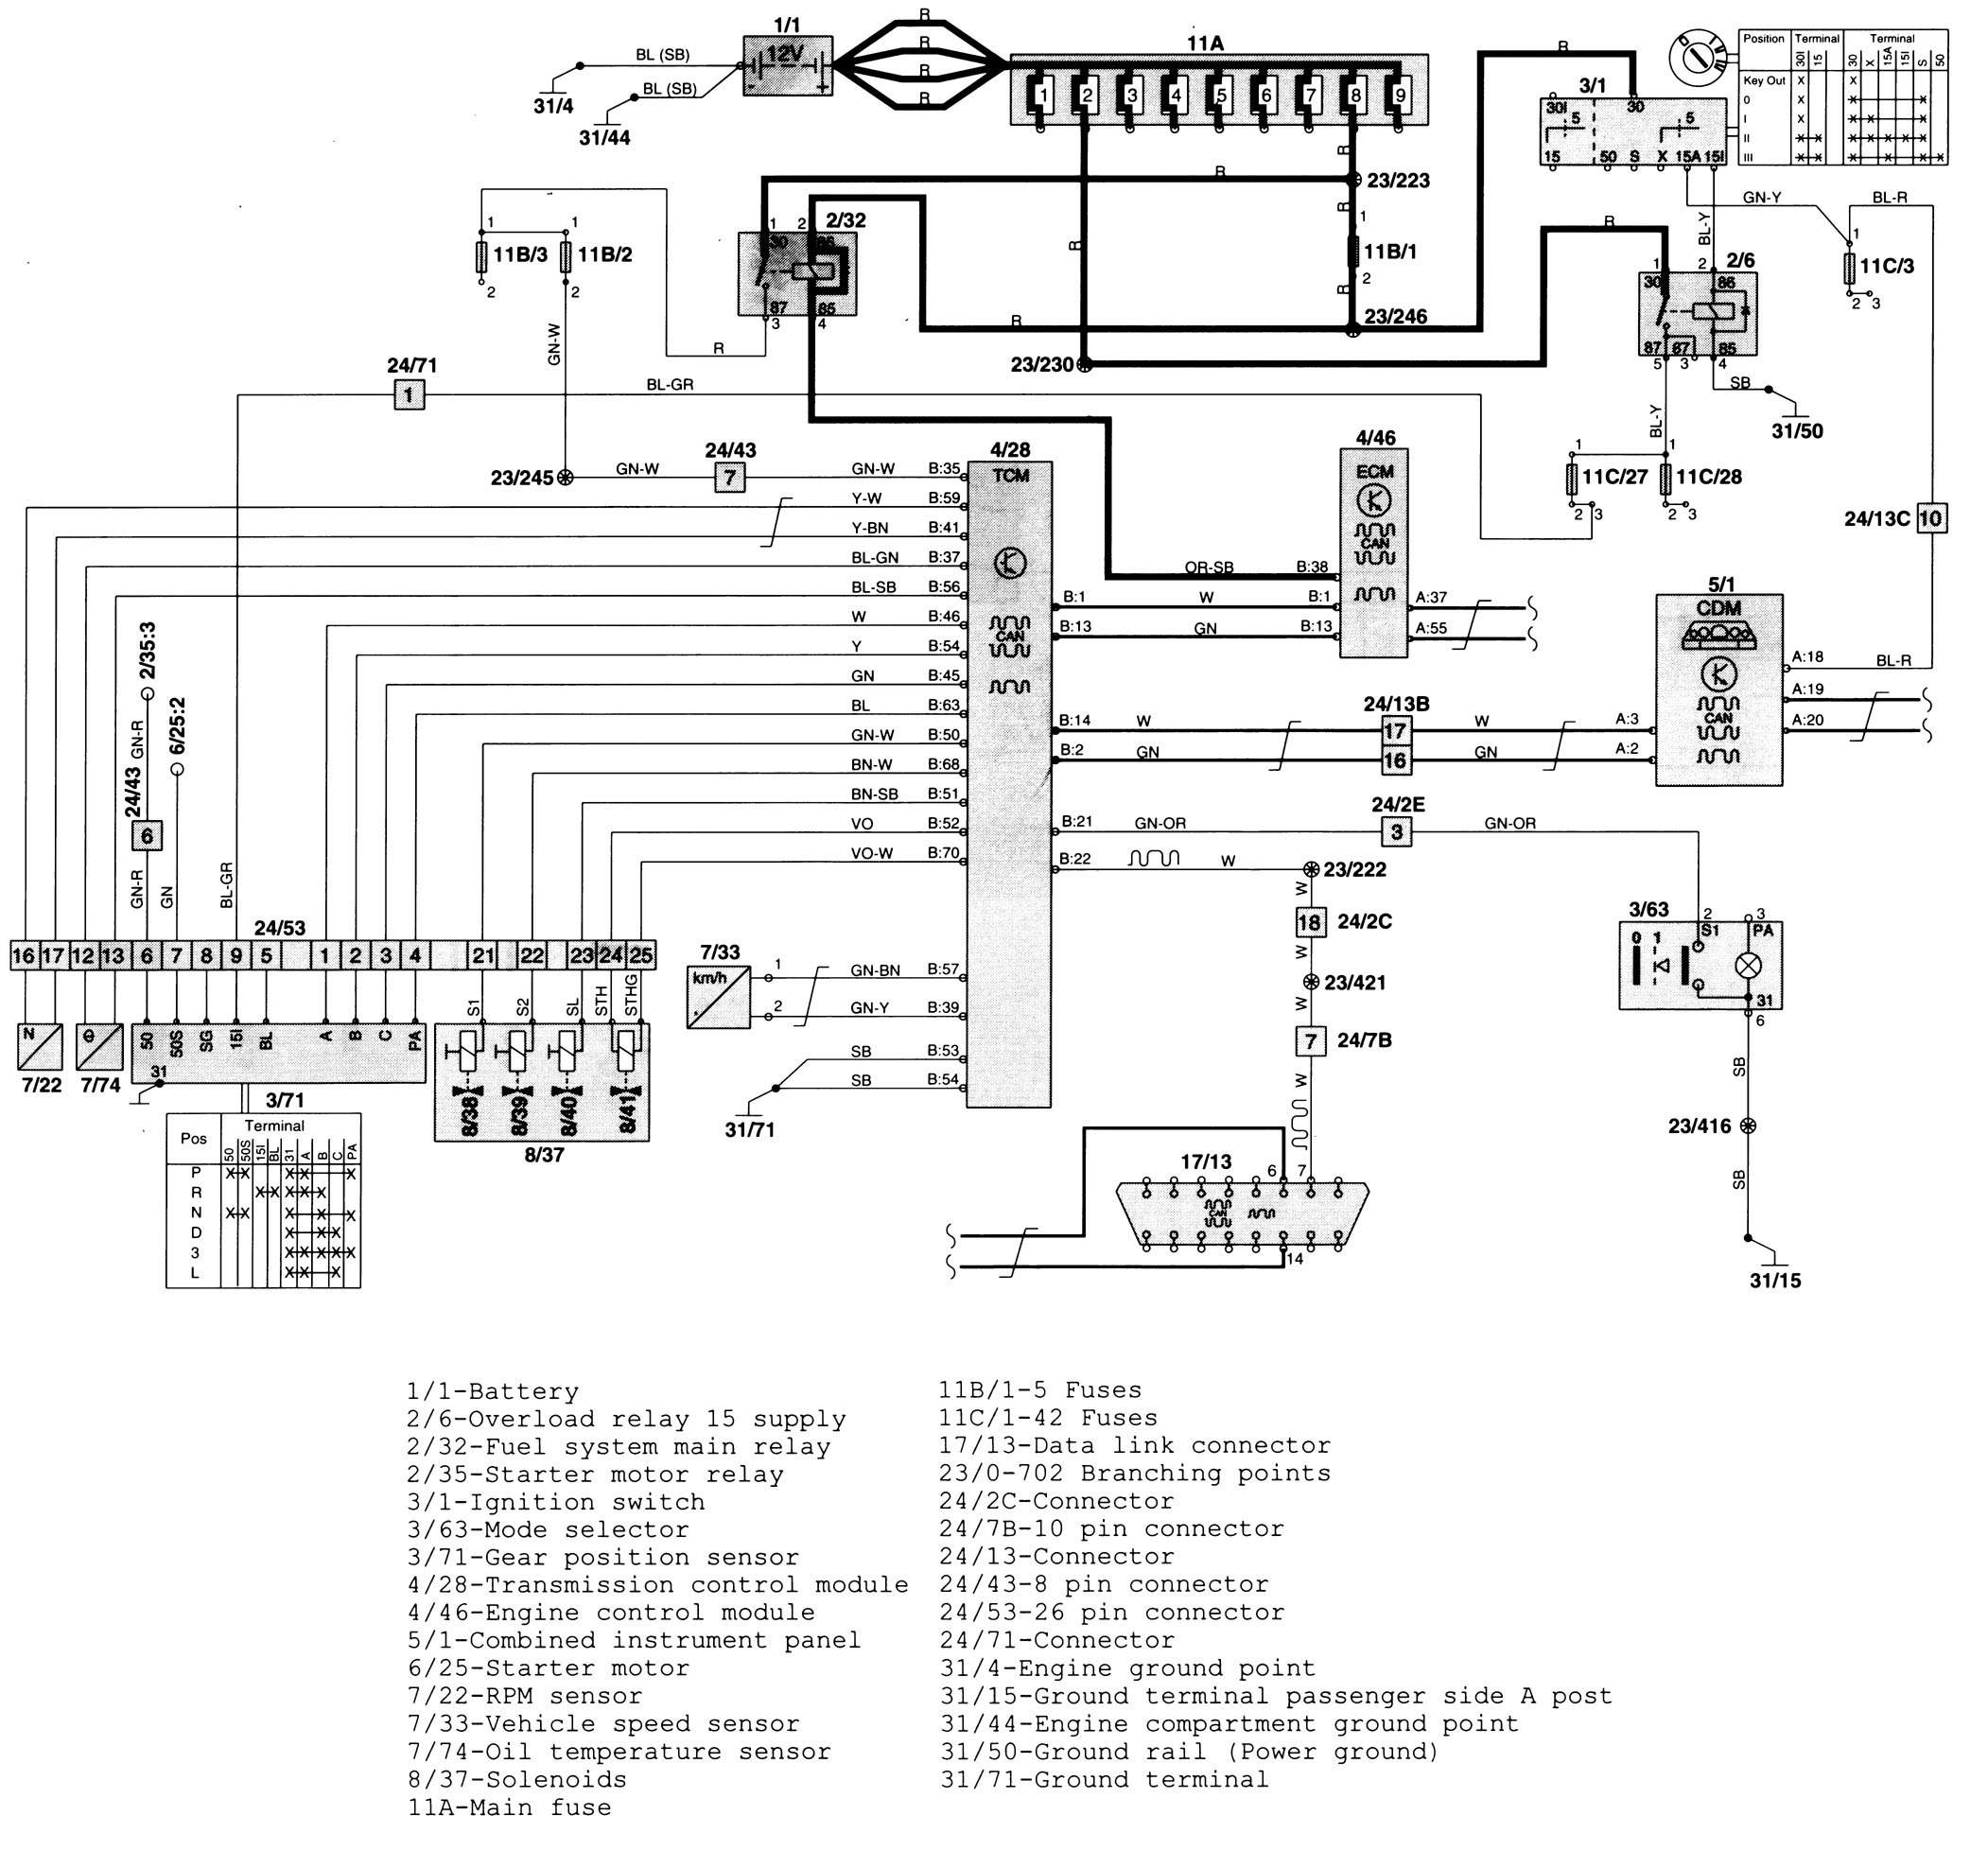 Wiring schematic volvo s diagram images